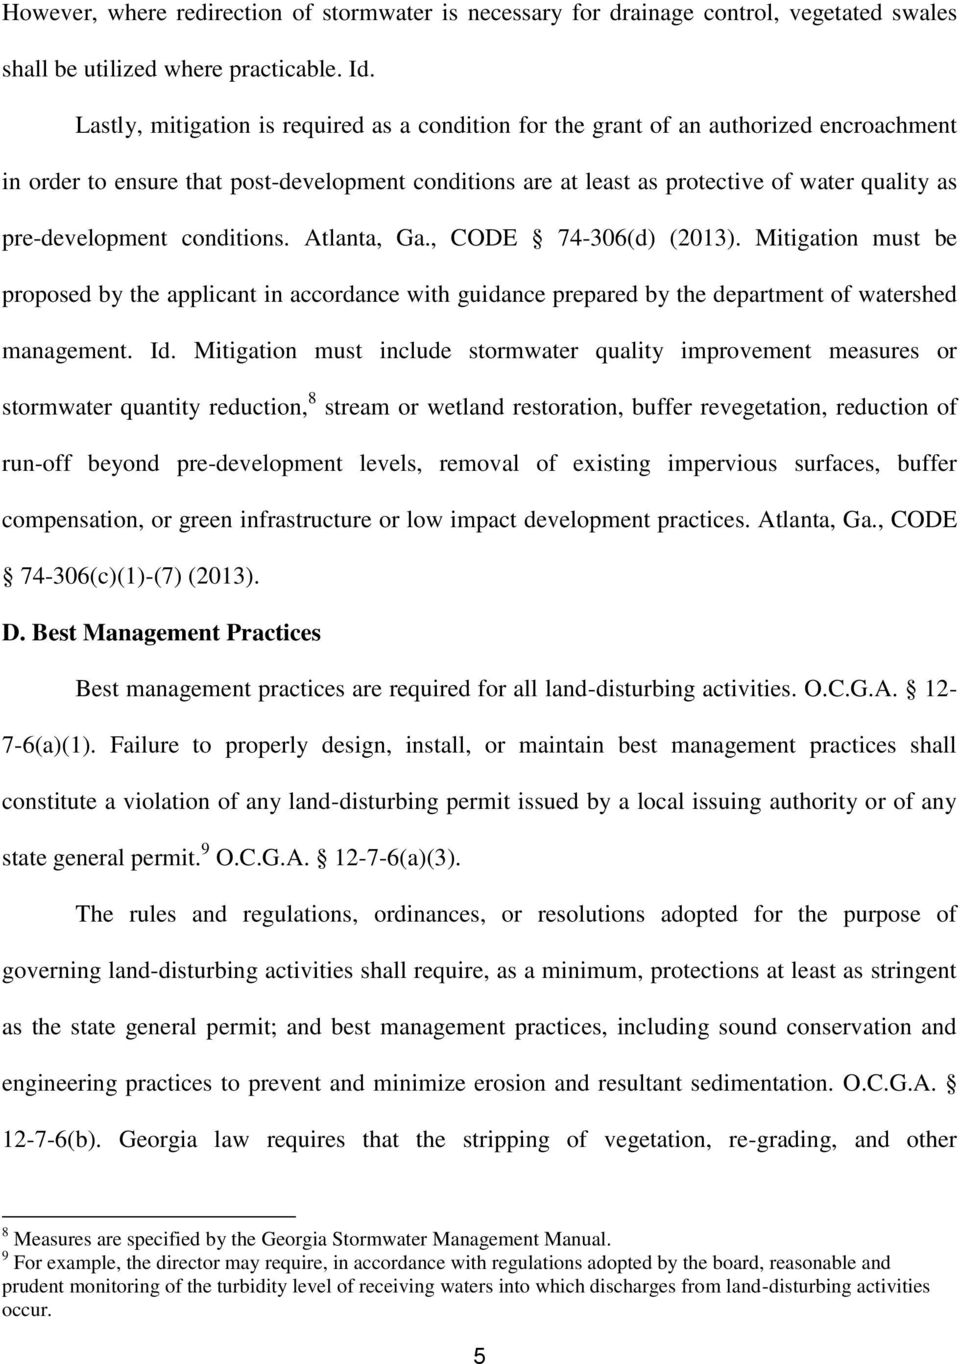 pre-development conditions. Atlanta, Ga., CODE 74-306(d) (2013). Mitigation must be proposed by the applicant in accordance with guidance prepared by the department of watershed management. Id.